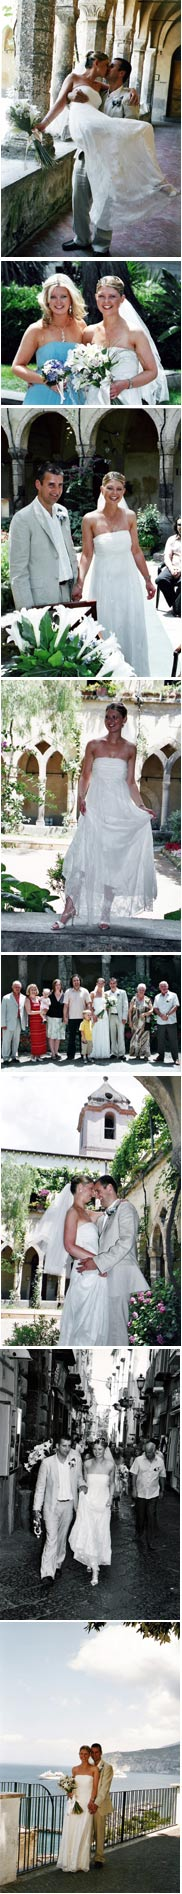 real-wedding-abroad-sorrento-italy-wendy-and-patrick